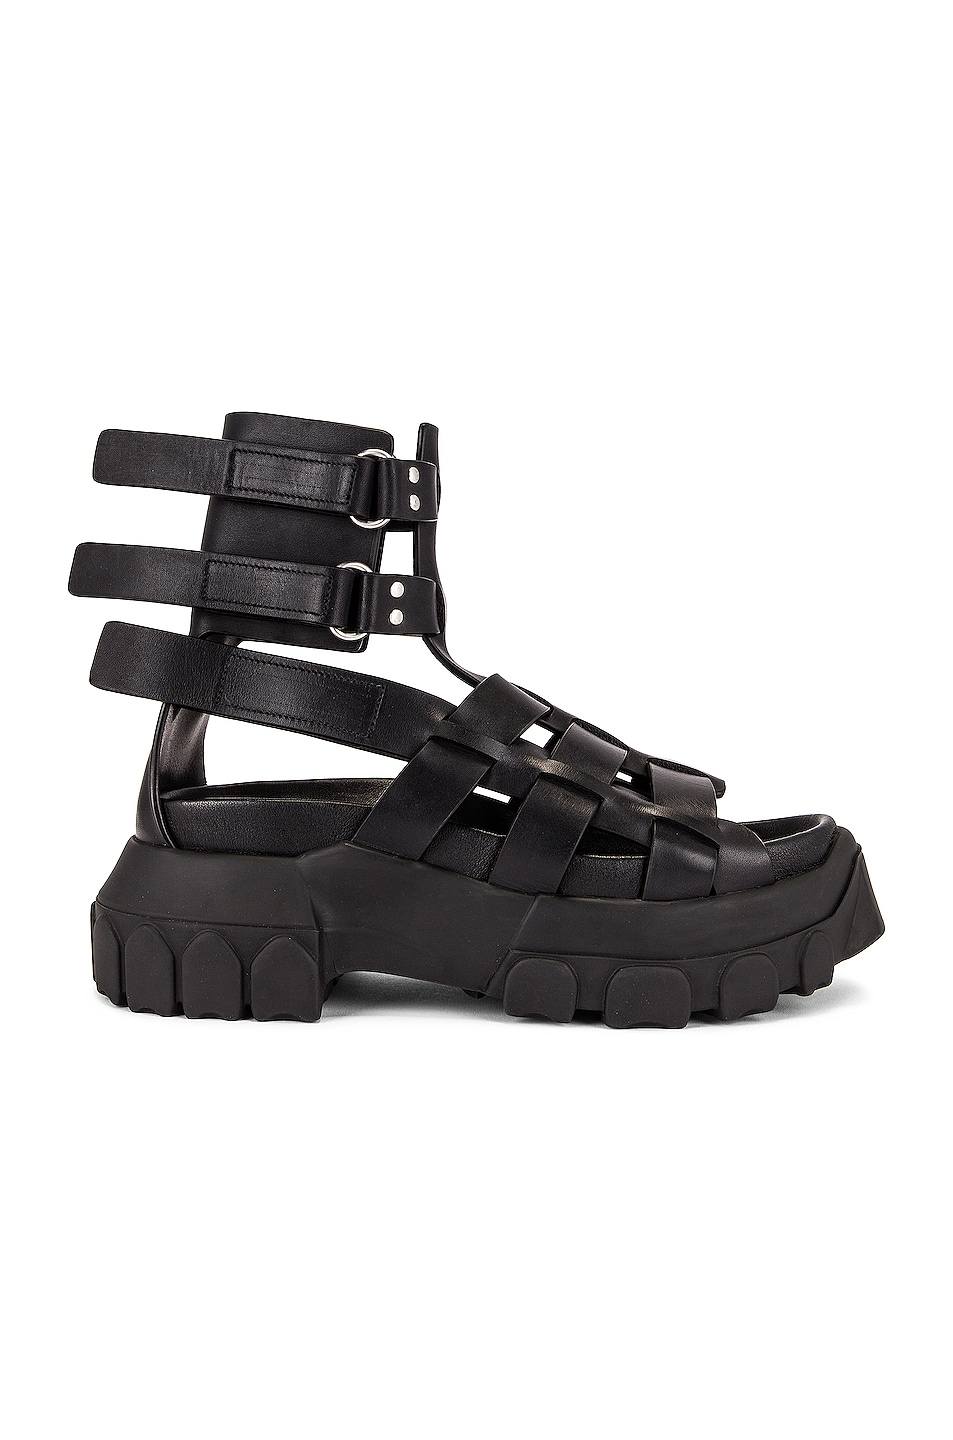 Image 1 of Rick Owens Hiking Tractor Sandal in Black